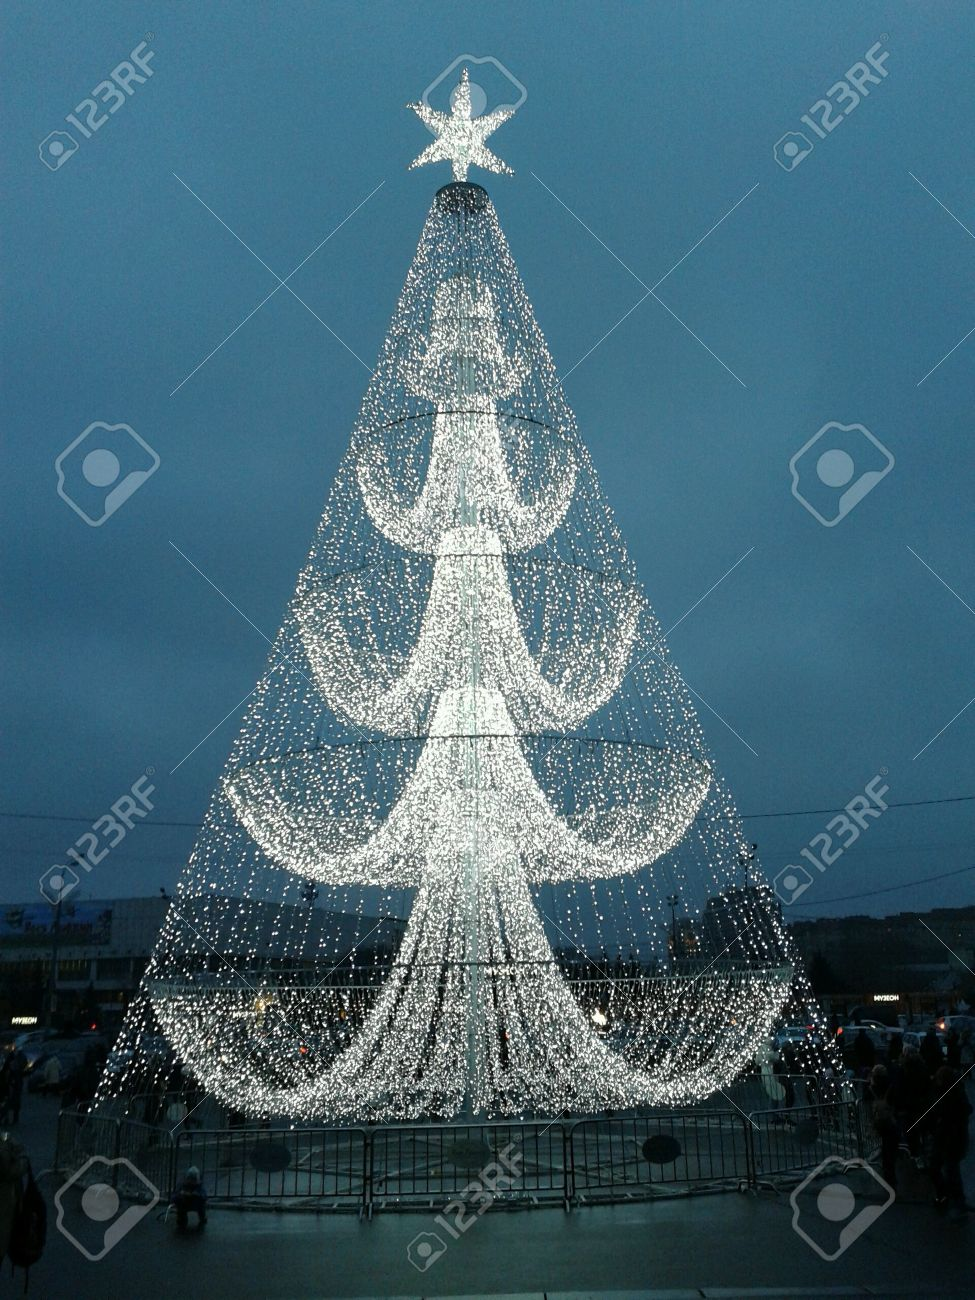 christmas tree made of lights moscow stock photo 24950045 - Christmas Tree Made Of Lights